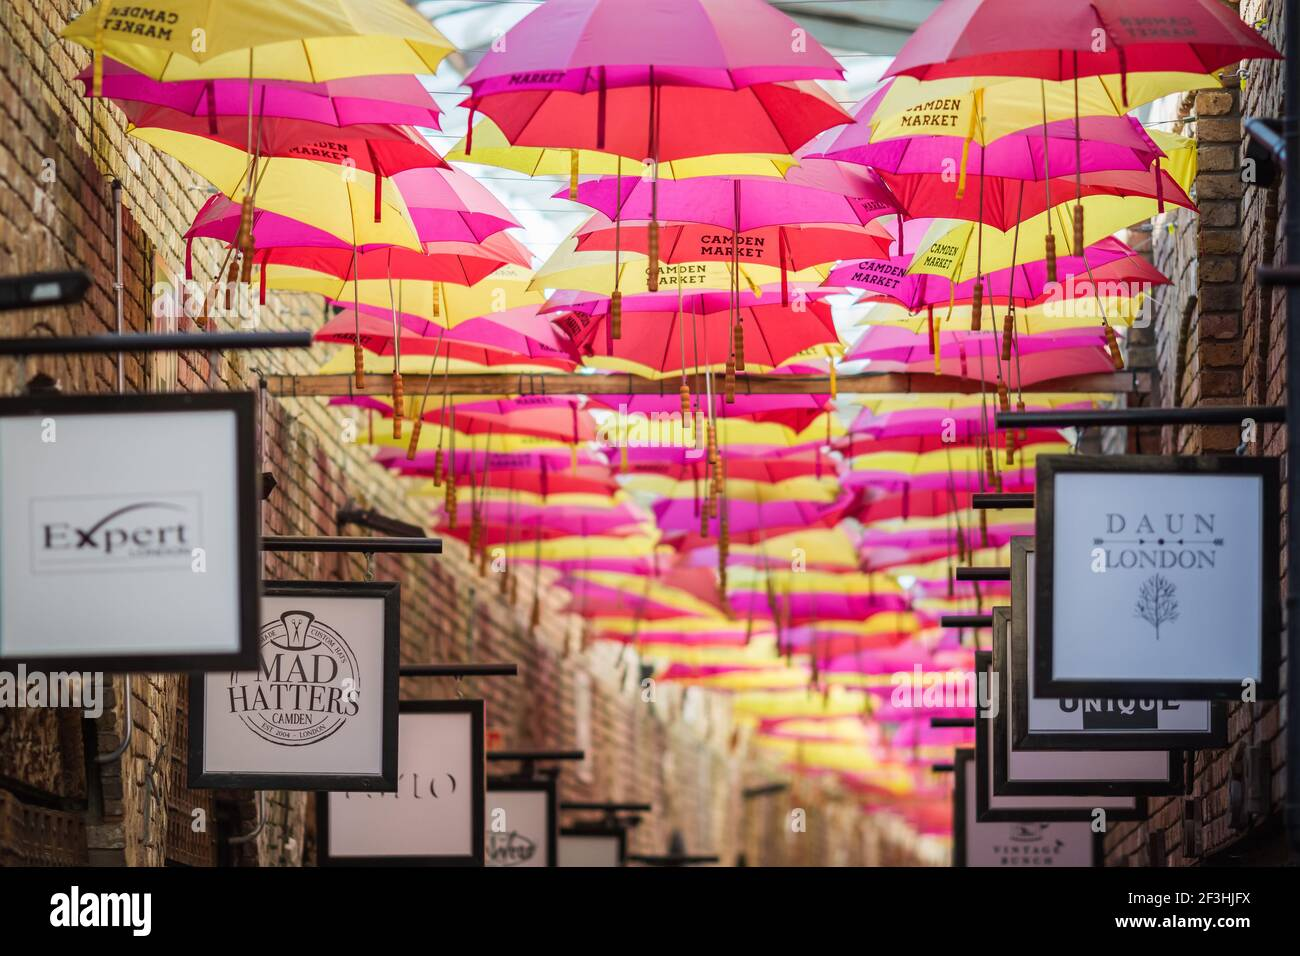 London, UK - 26 February, 2021 - The colourful umbrella alley in Camden stables market Stock Photo